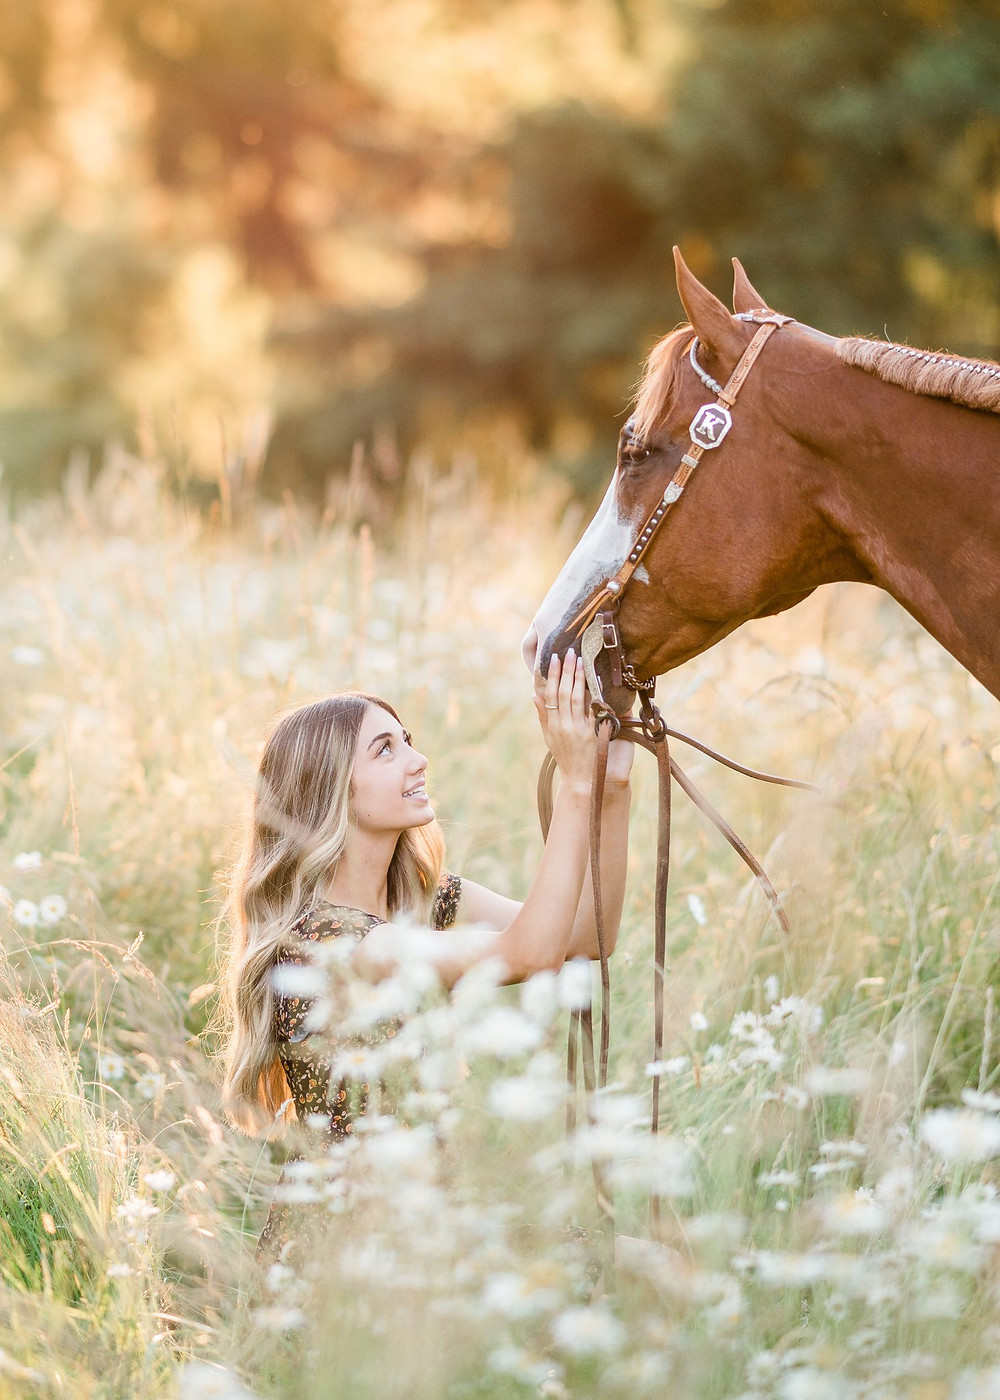 Kaitlyn sitting in a flower field looking up at her paint horse, Jimmy John